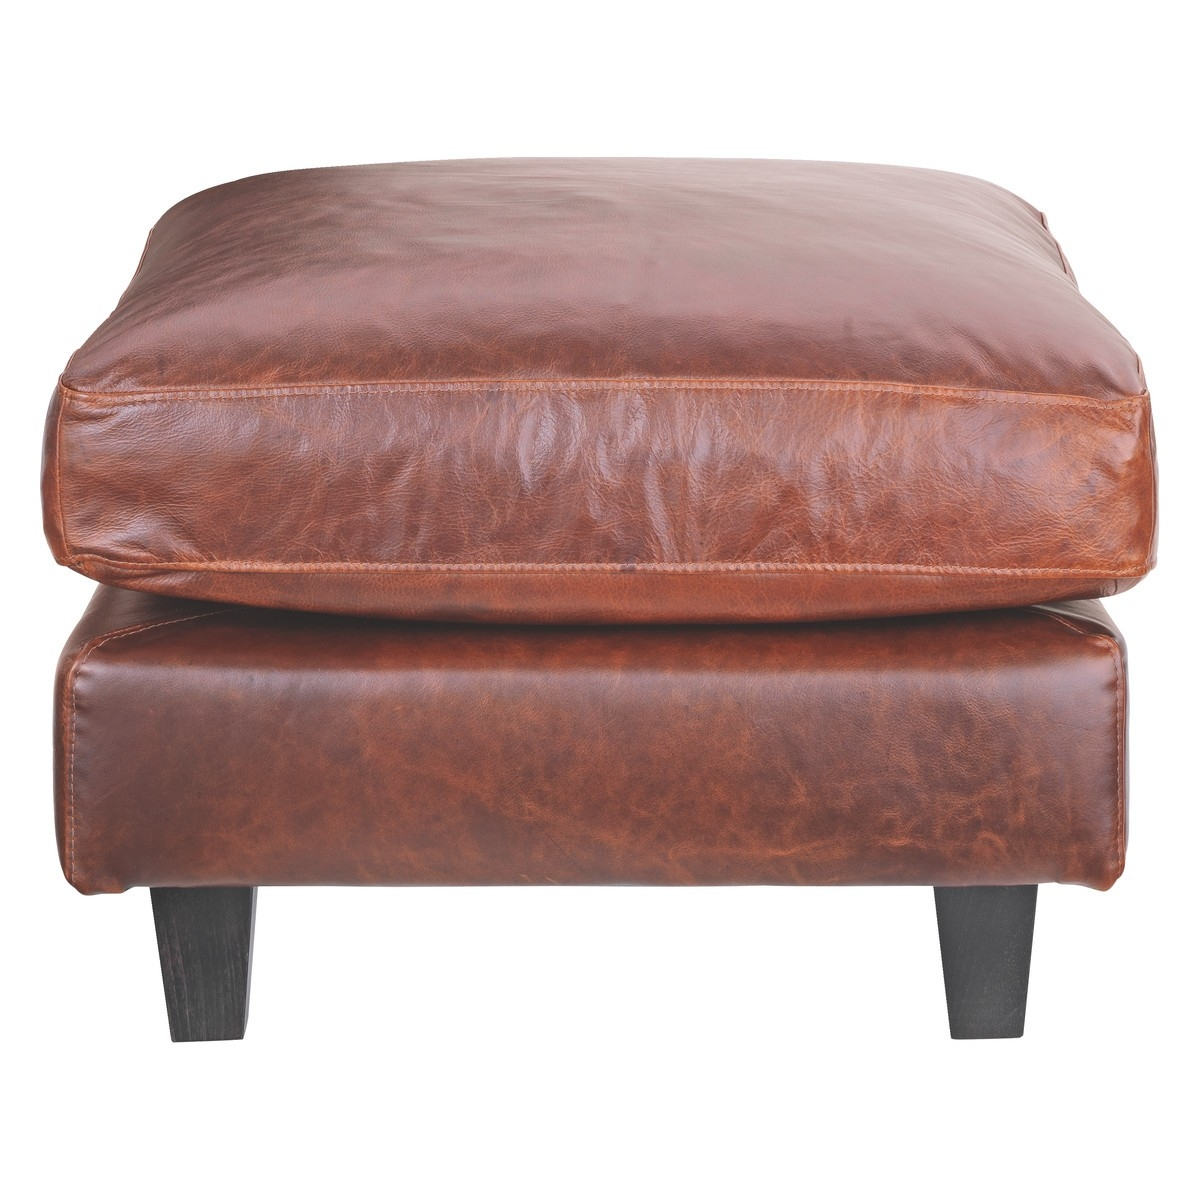 Chester Tan Leather Footstool Dark Stained Feet Buy Now At Regarding Leather Footstools And Pouffes (Image 1 of 15)